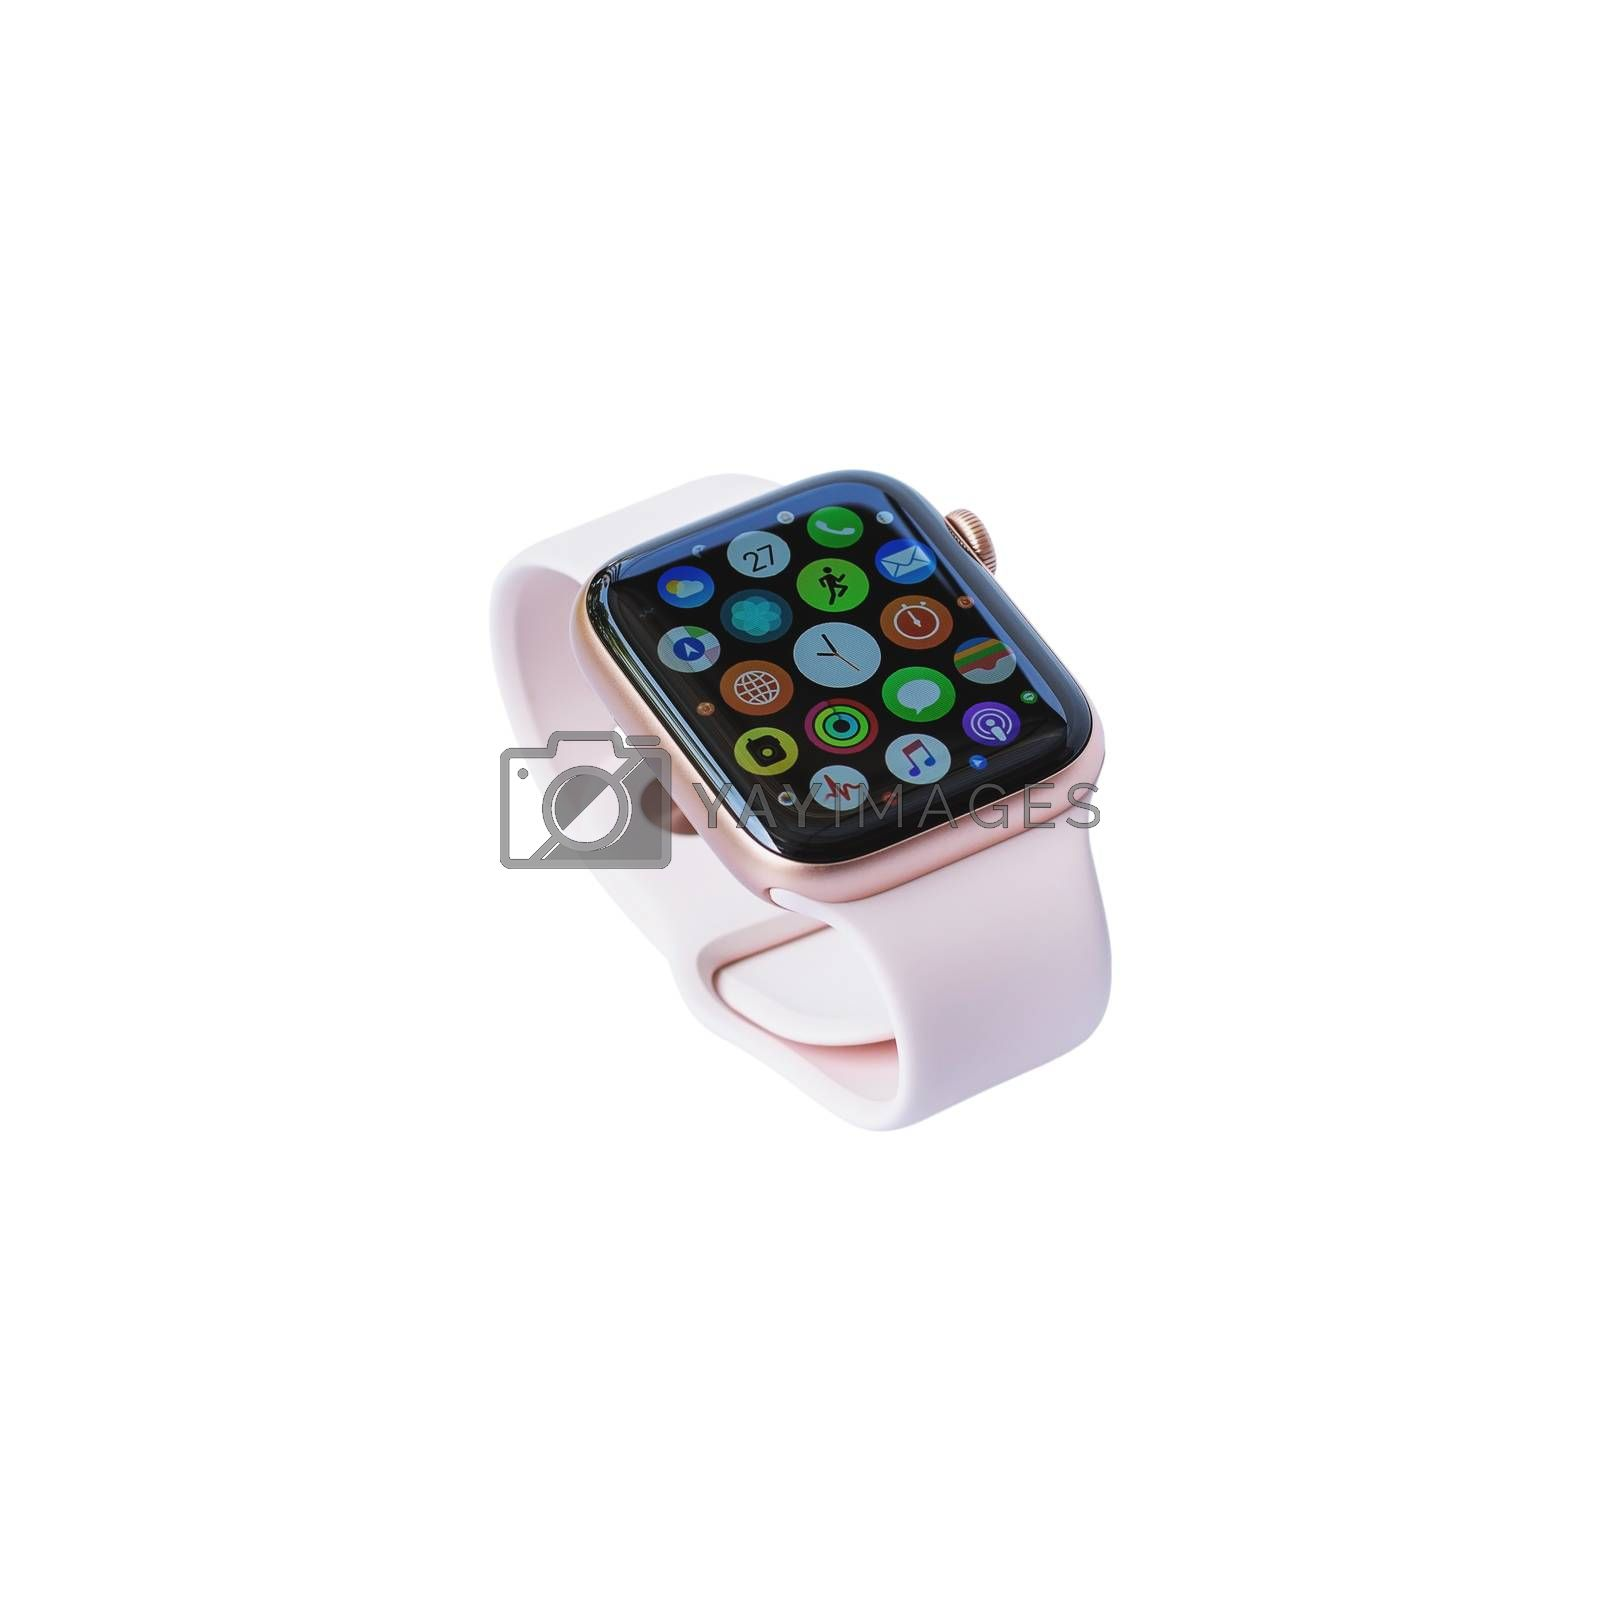 Beautiful design modern smart watch isolated on white background, with clipping path.